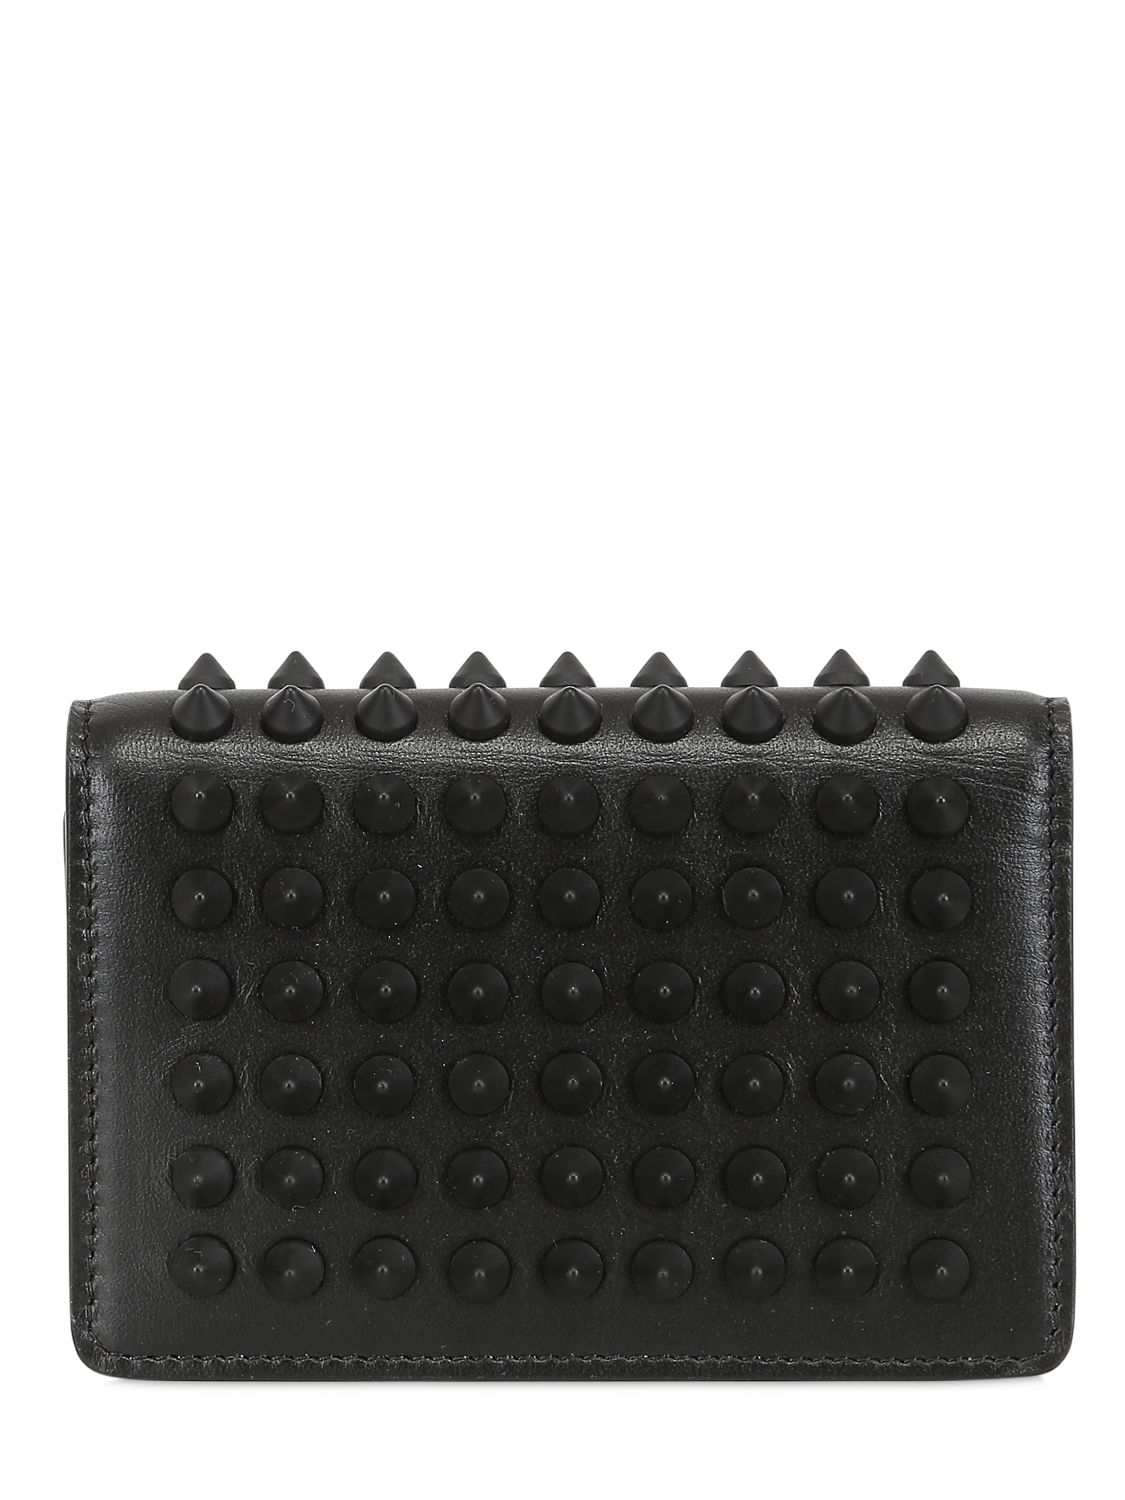 d68641aa8b8 Christian Louboutin Black Milos Calf Spikes Credit Card Holder for men